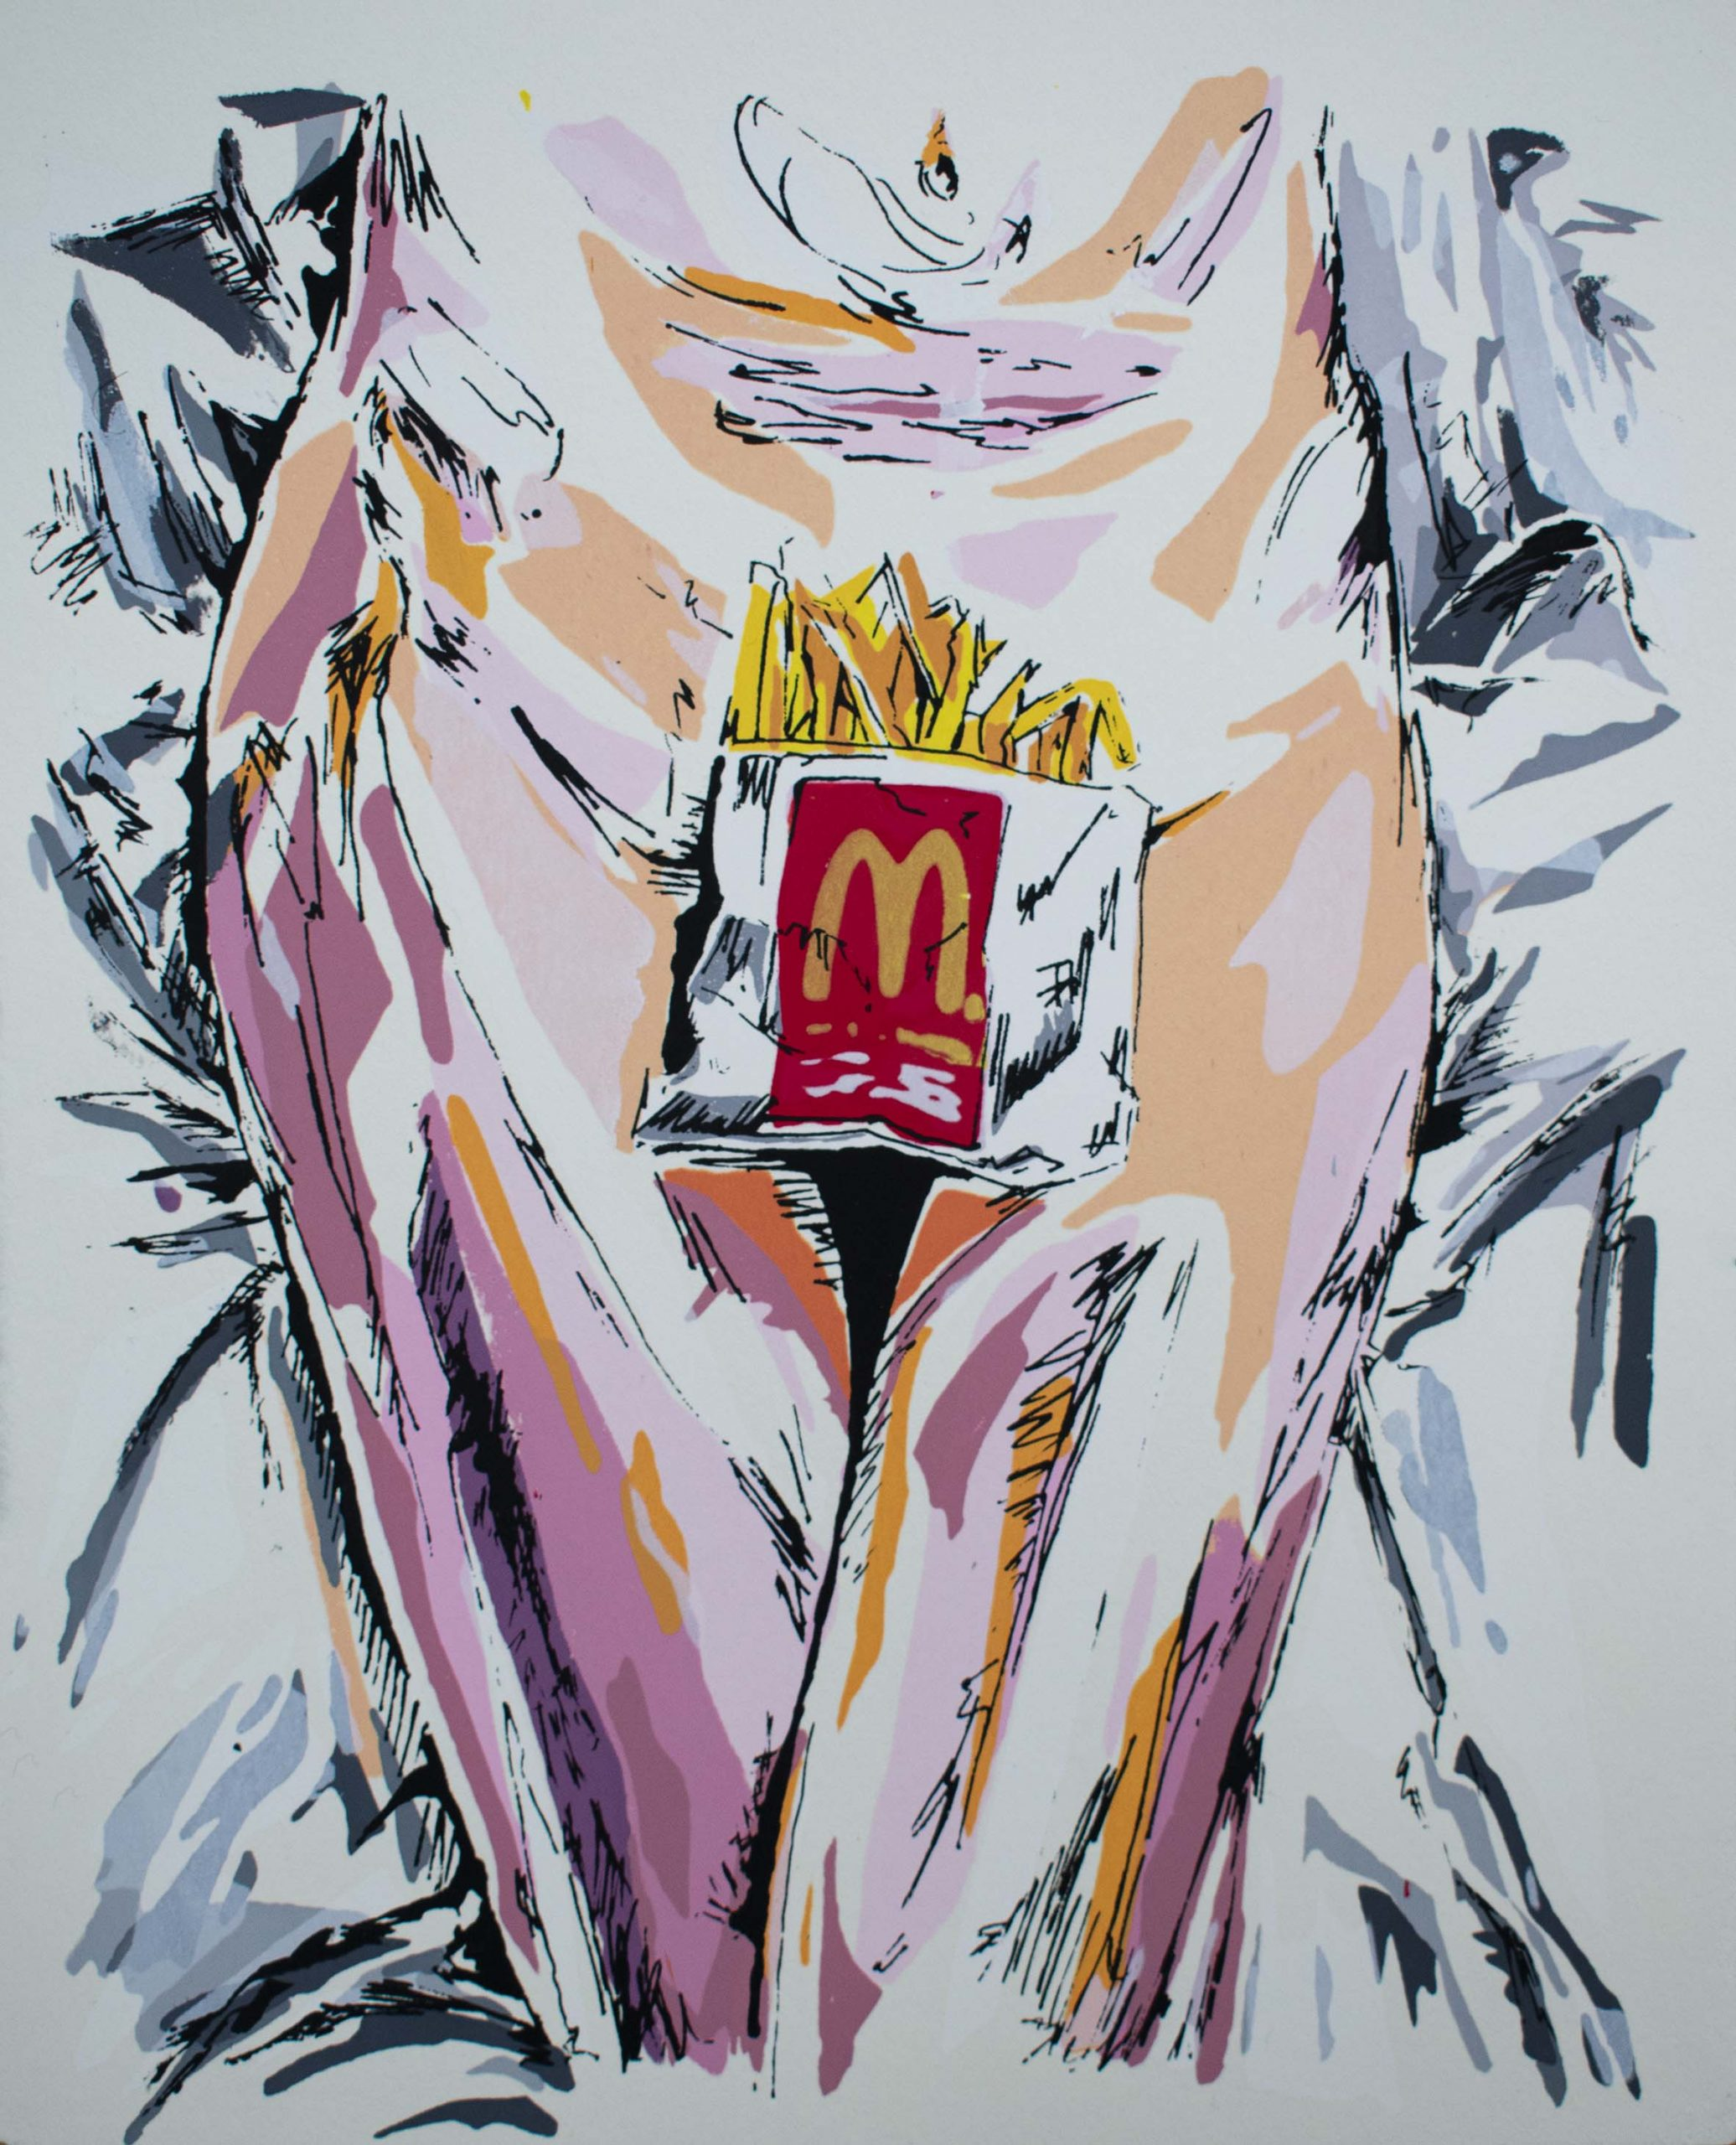 I'm Lovin'it - 2018 - silkscreen on paper - 8x10 inch